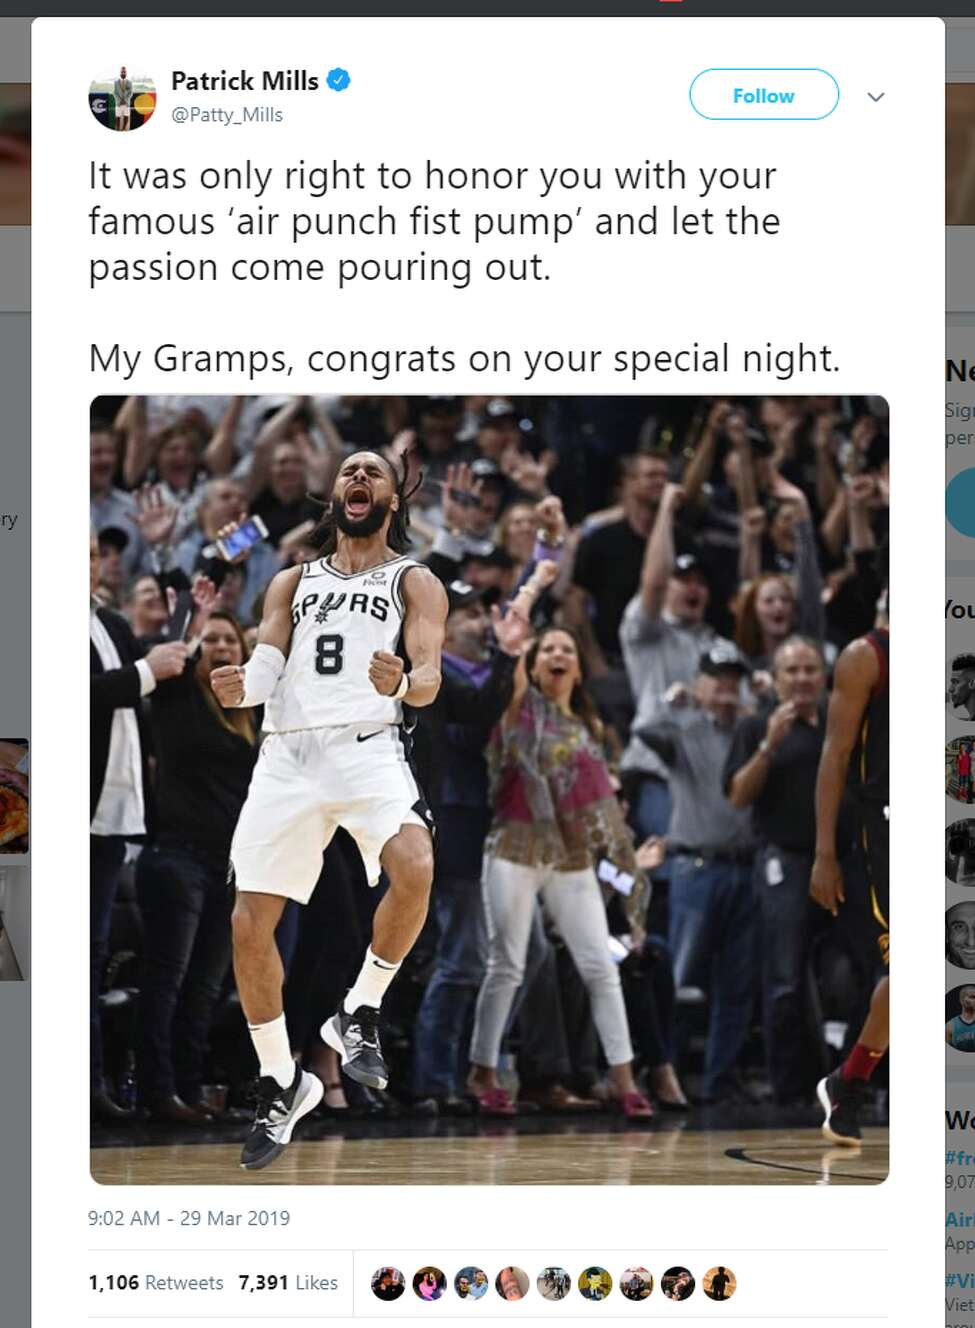 It was only right to honor you with your famous 'air punch fist pump' and let the passion come pouring out. My Gramps, congrats on your special night.